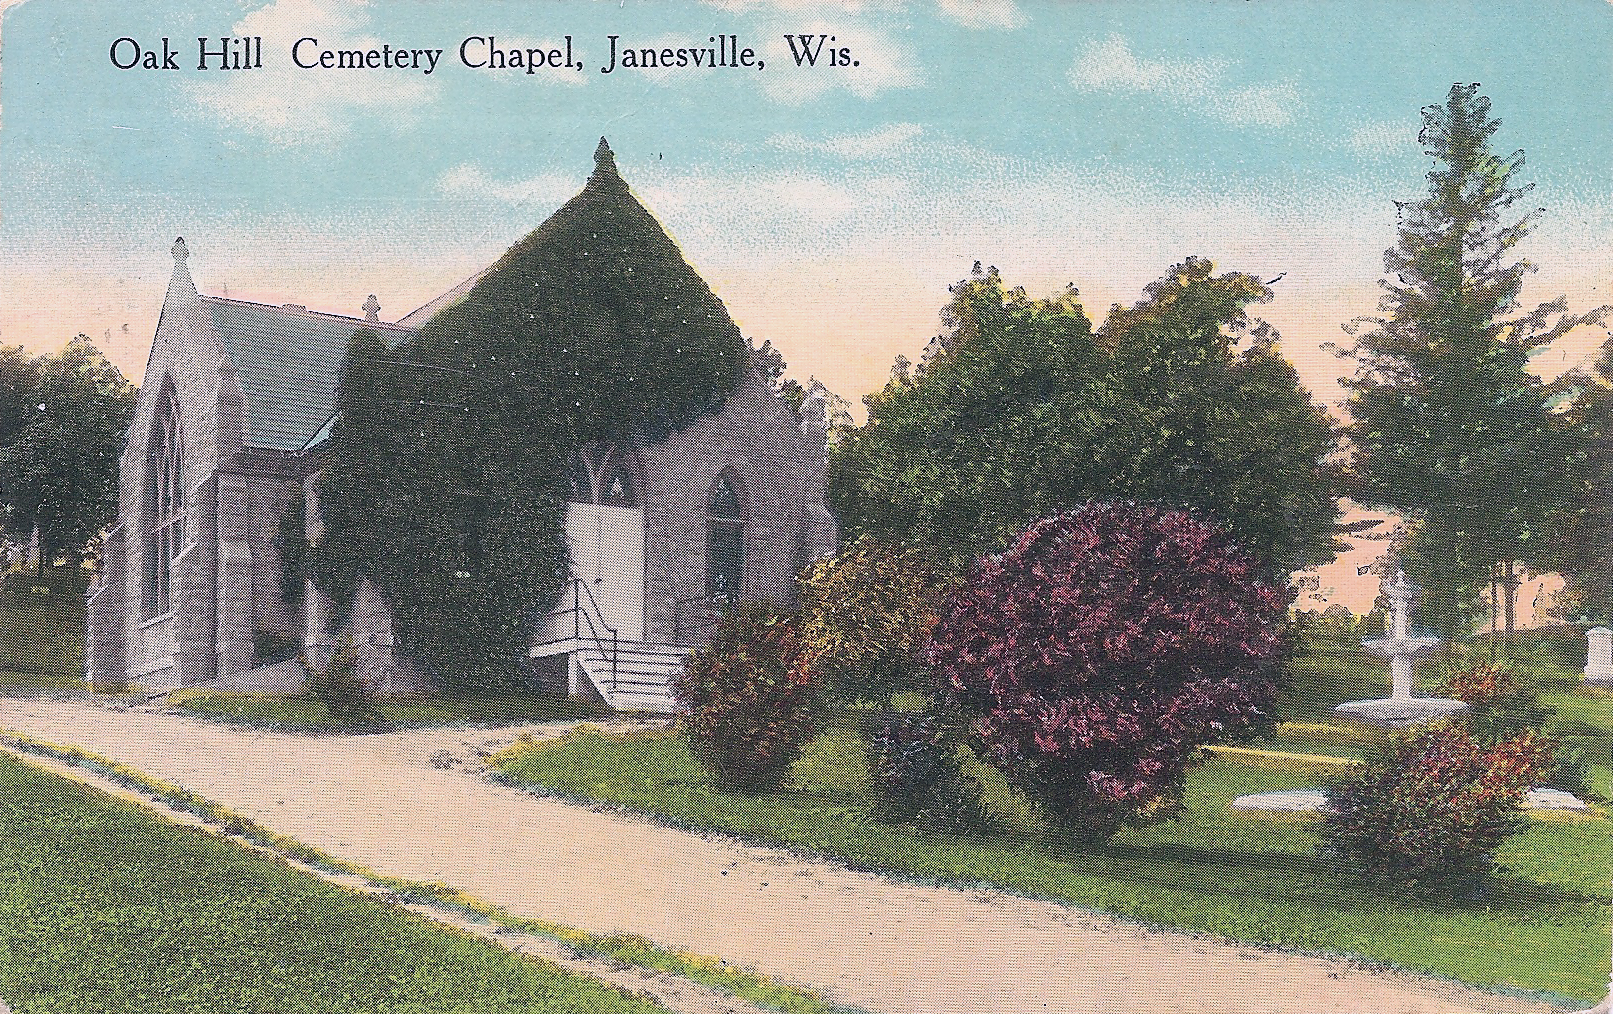 Postcard of Oak Hill Chapel, currently under renovation.